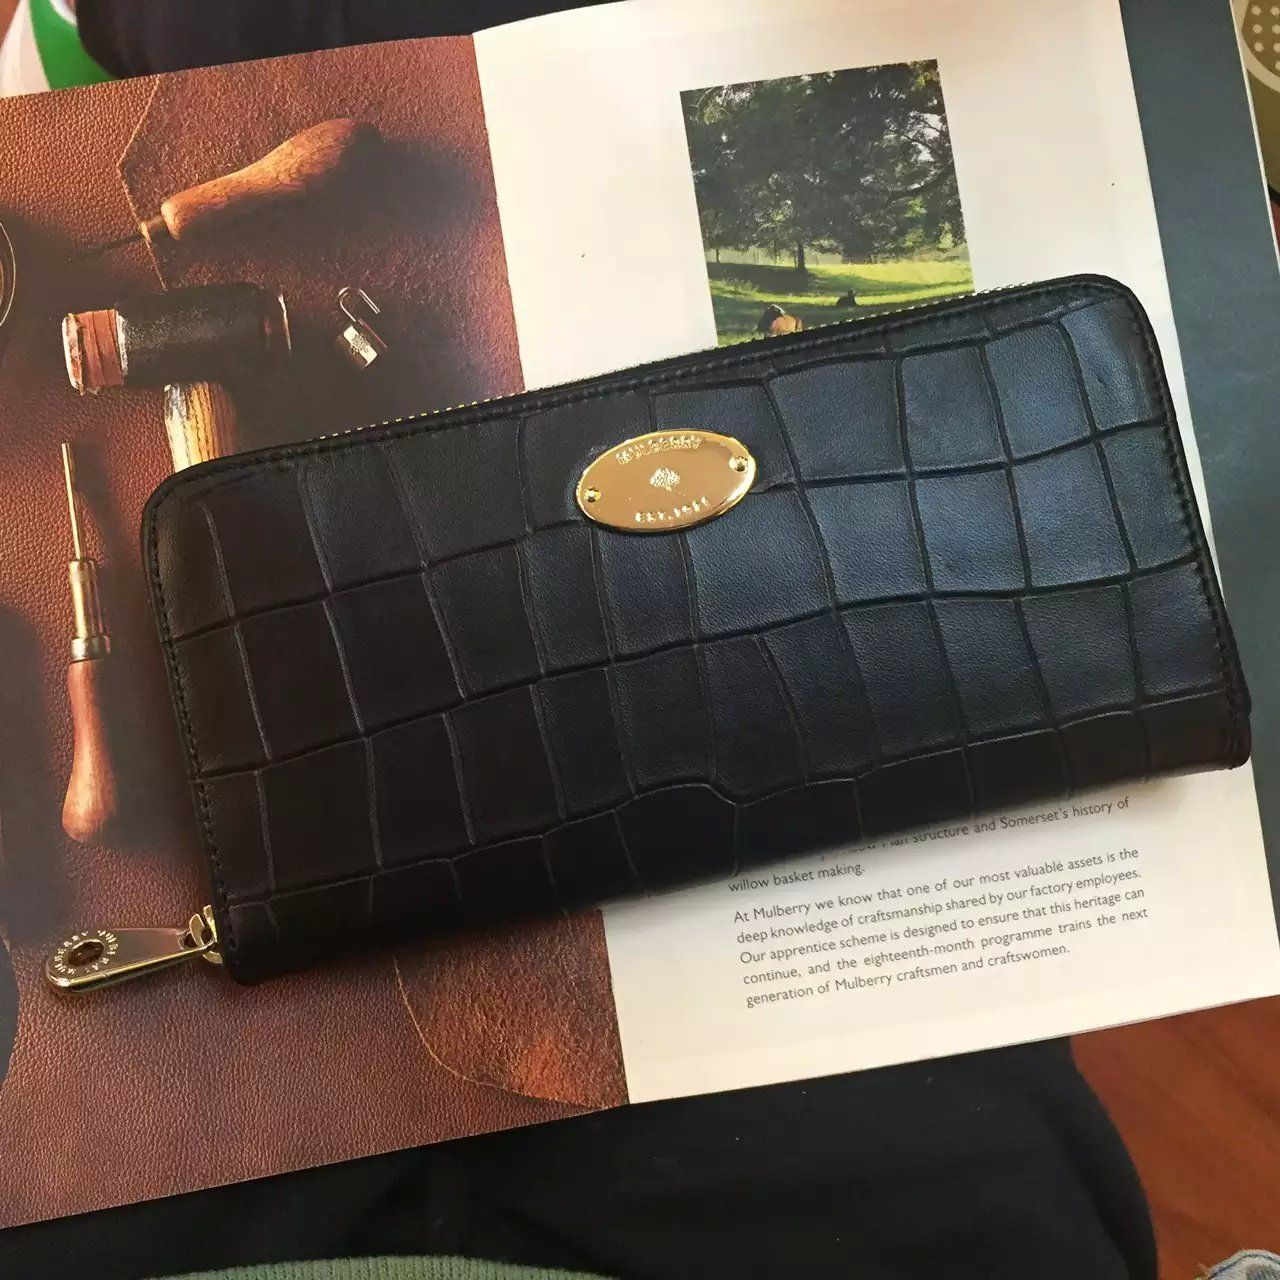 New Edition!2016 Mulberry Handbags Collection Outlet UK-Mulberry Zip Around Wallet Black Deep Embossed Croc Print